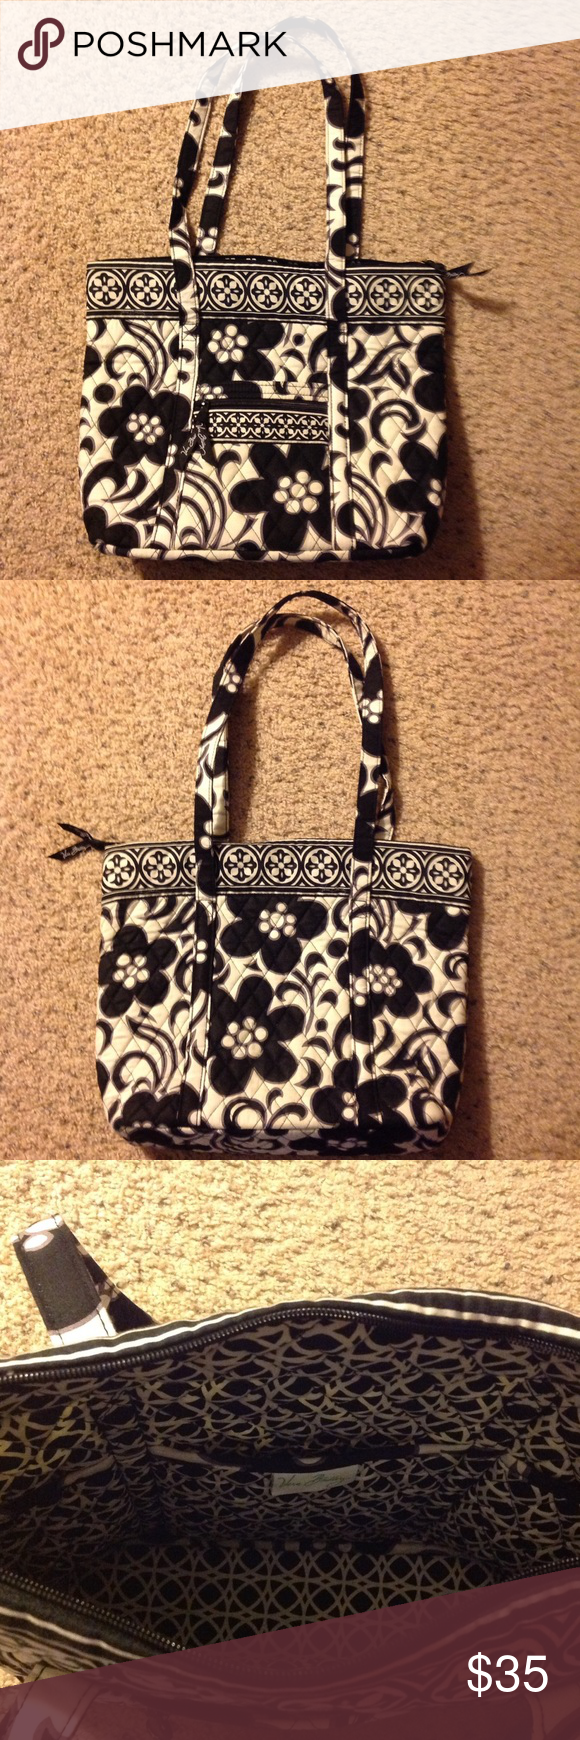 Vera Bradley Bag/Purse This bag has hardly been used! It would make a great bag or purse. It has a zip closure. Vera Bradley Bags Totes